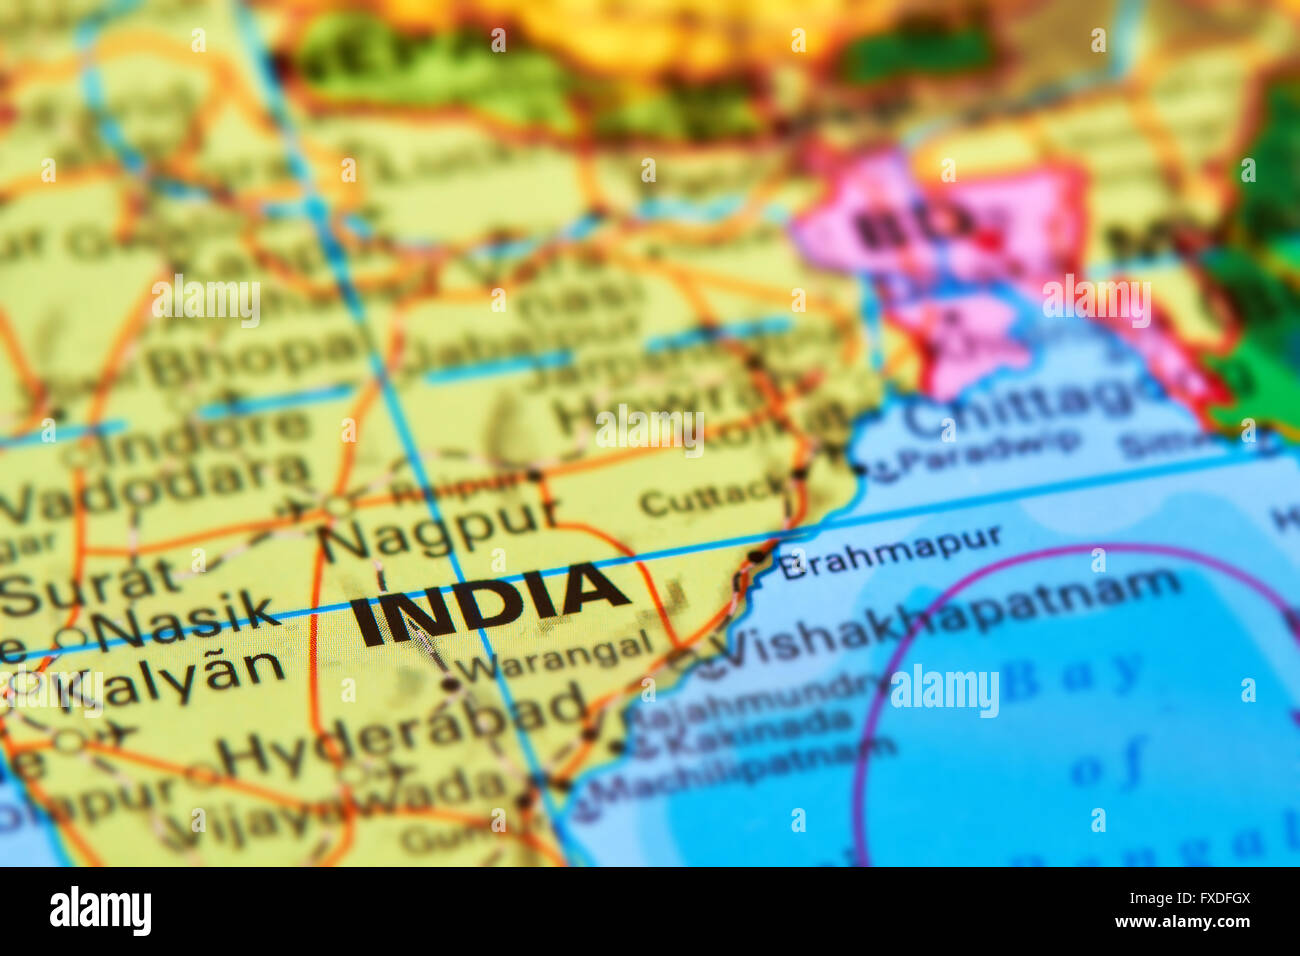 India Large Asian Country On The World Map Stock Photo 102330506